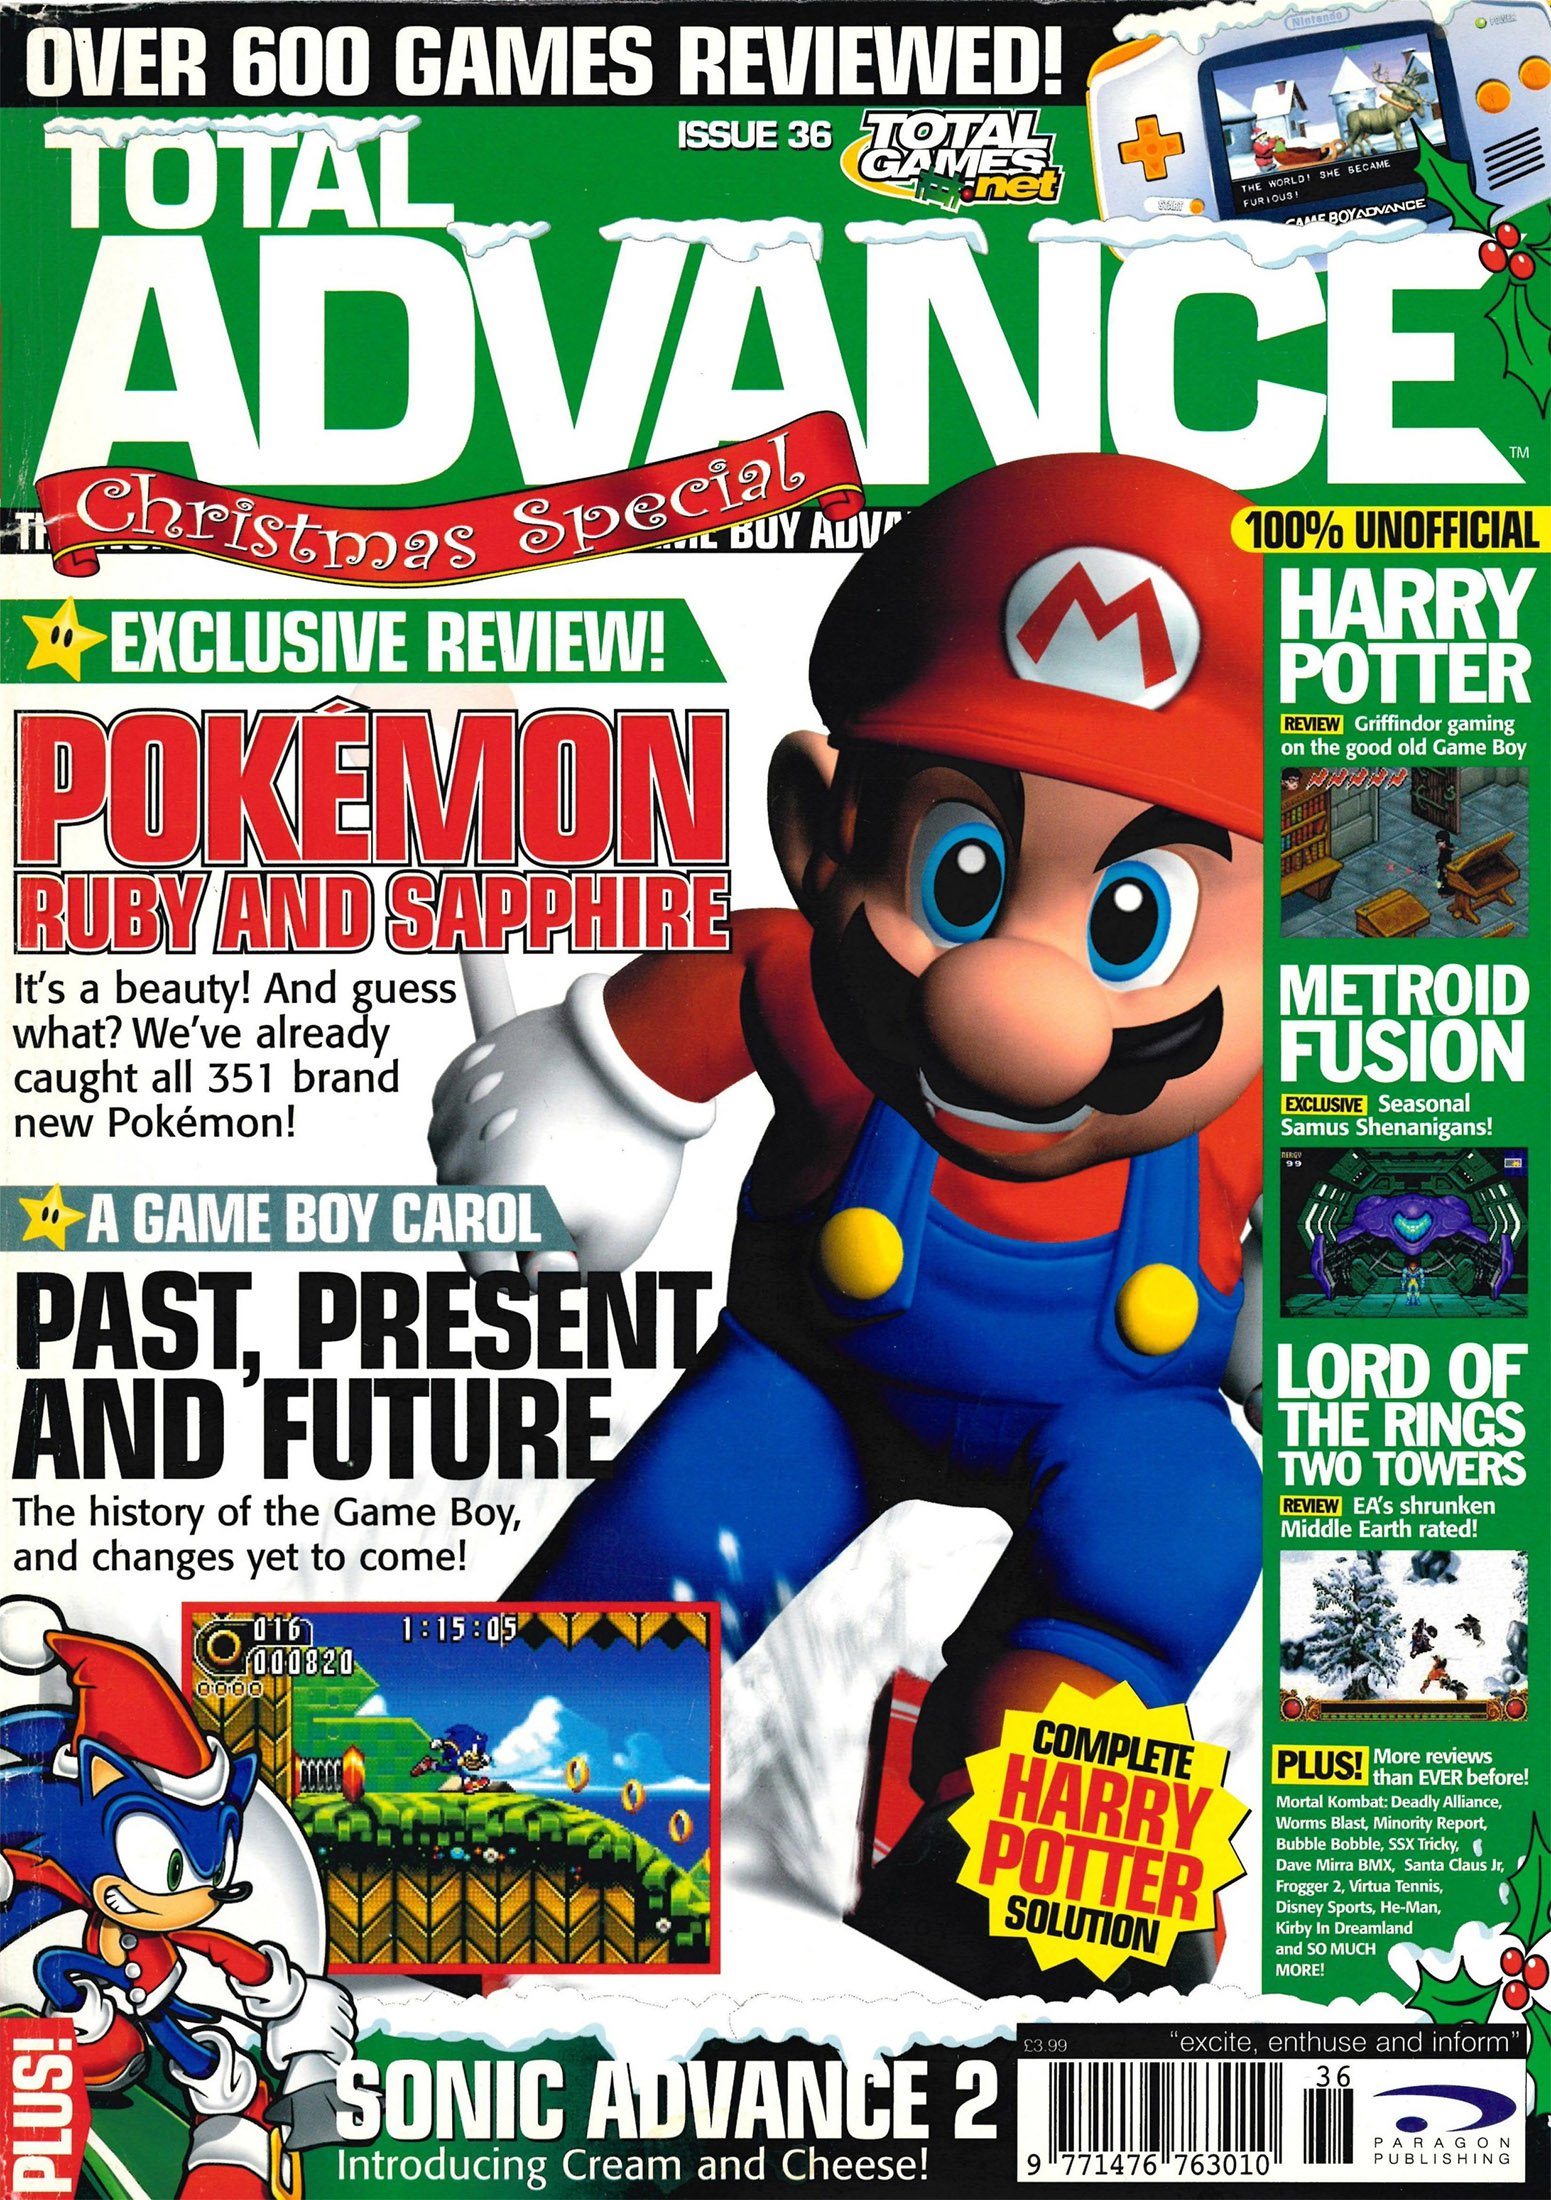 Total Advance Issue 36 (December 2002)